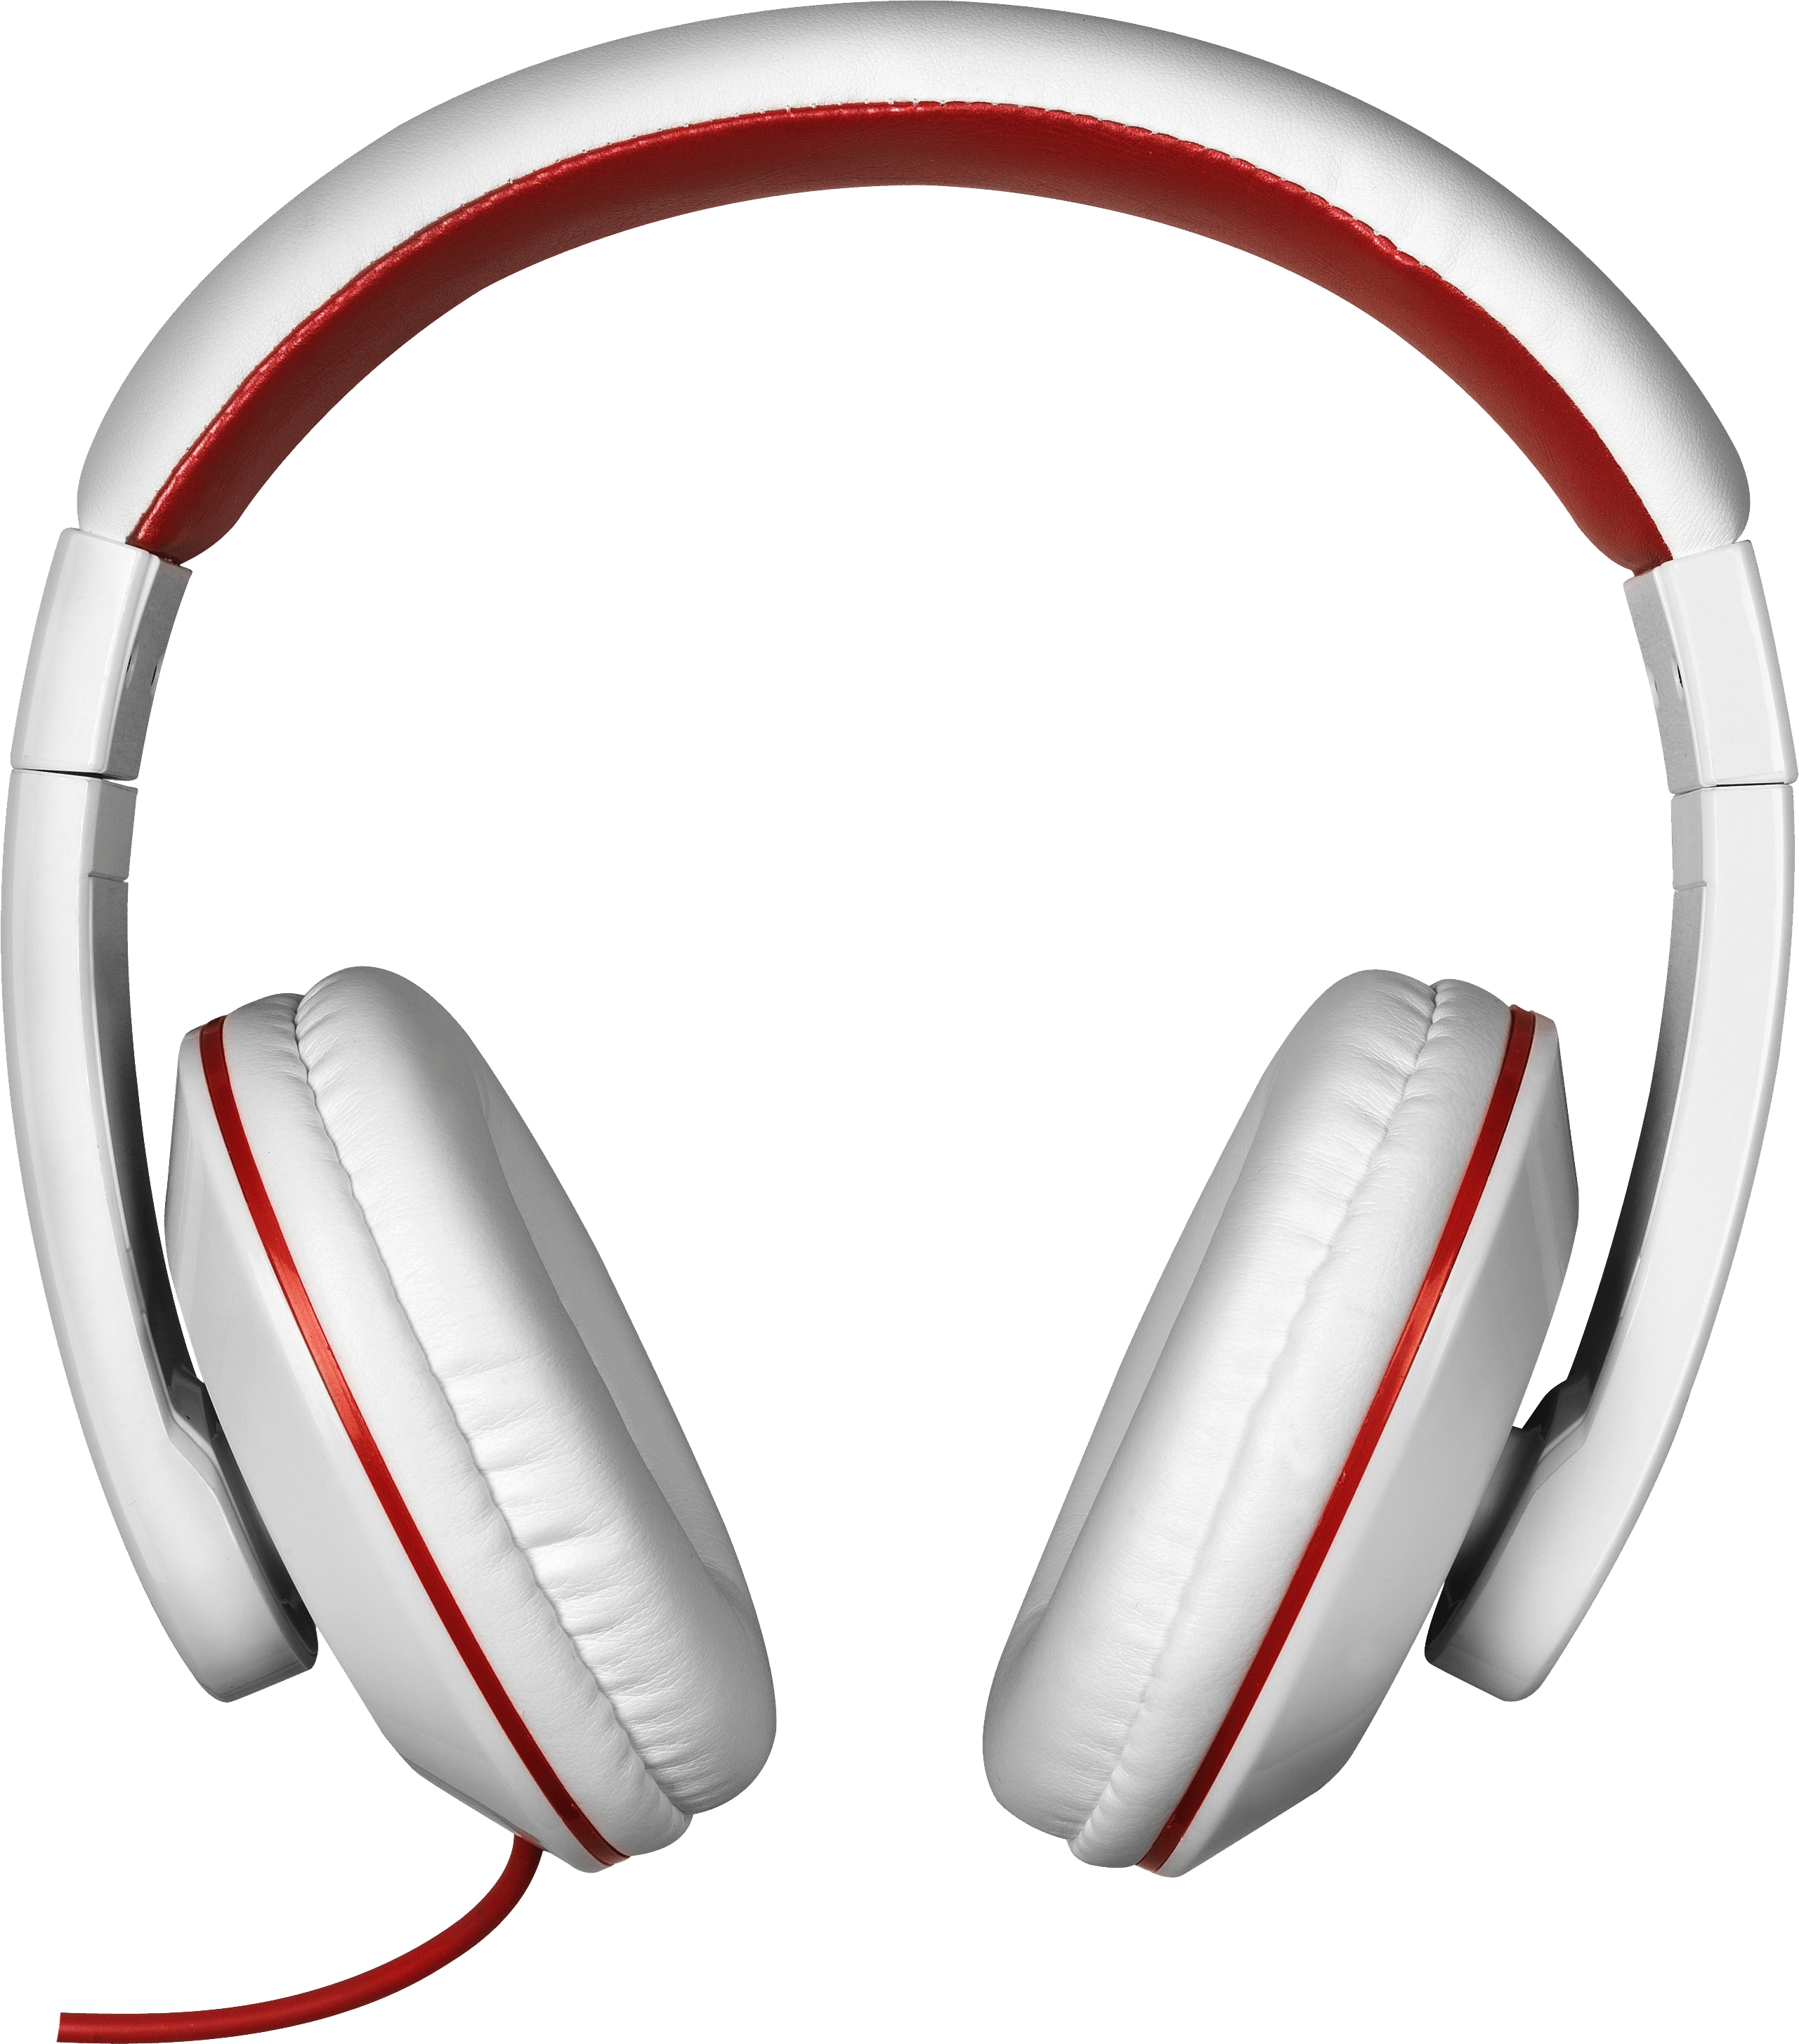 White headphone clipart transparent background clip black and white library Red White Headphones transparent PNG - StickPNG clip black and white library